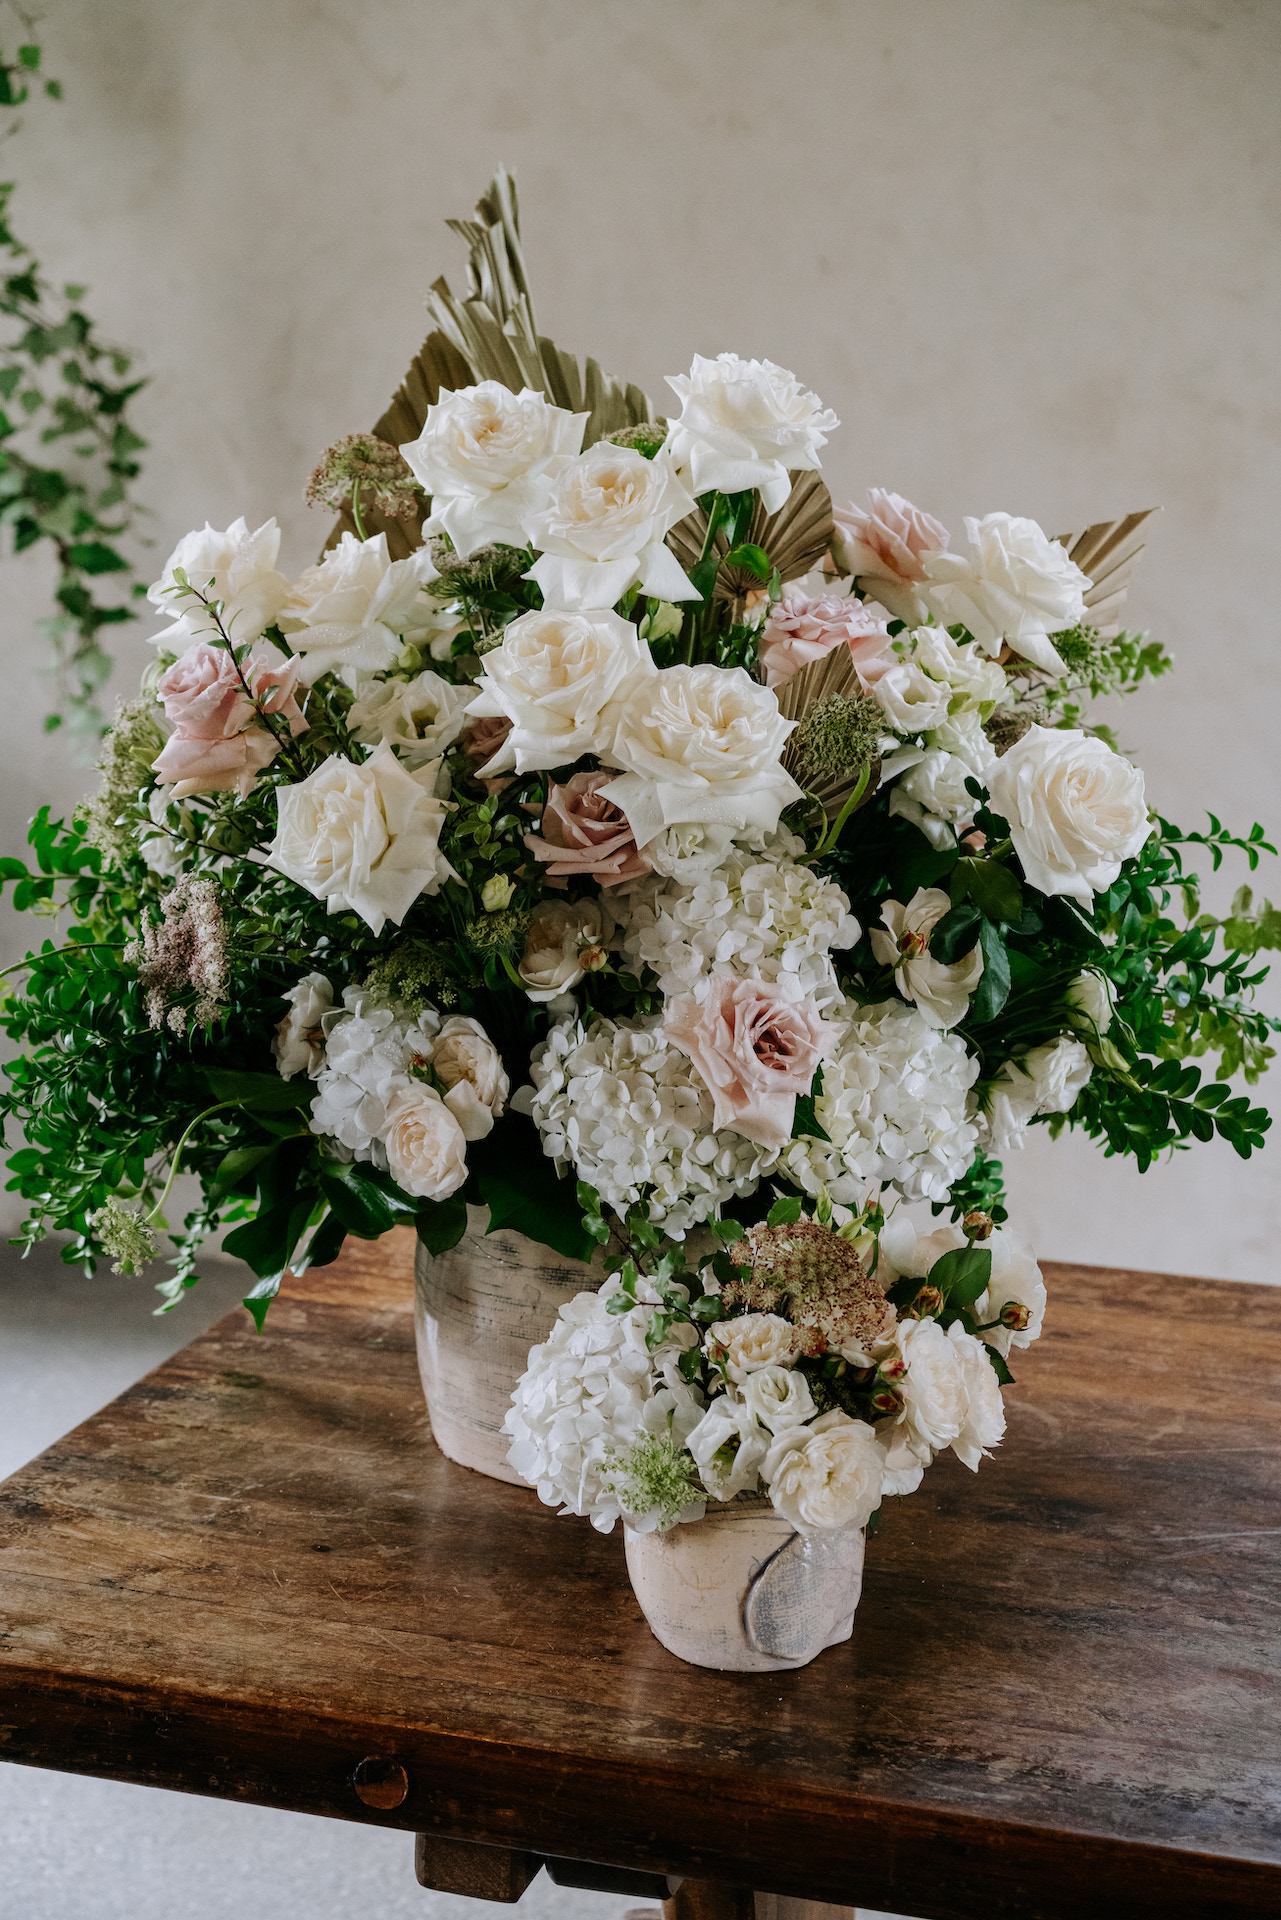 Neutral wedding flowers white and blush roses by Yarra Valley Wedding Florist Sassafras Flower Design.